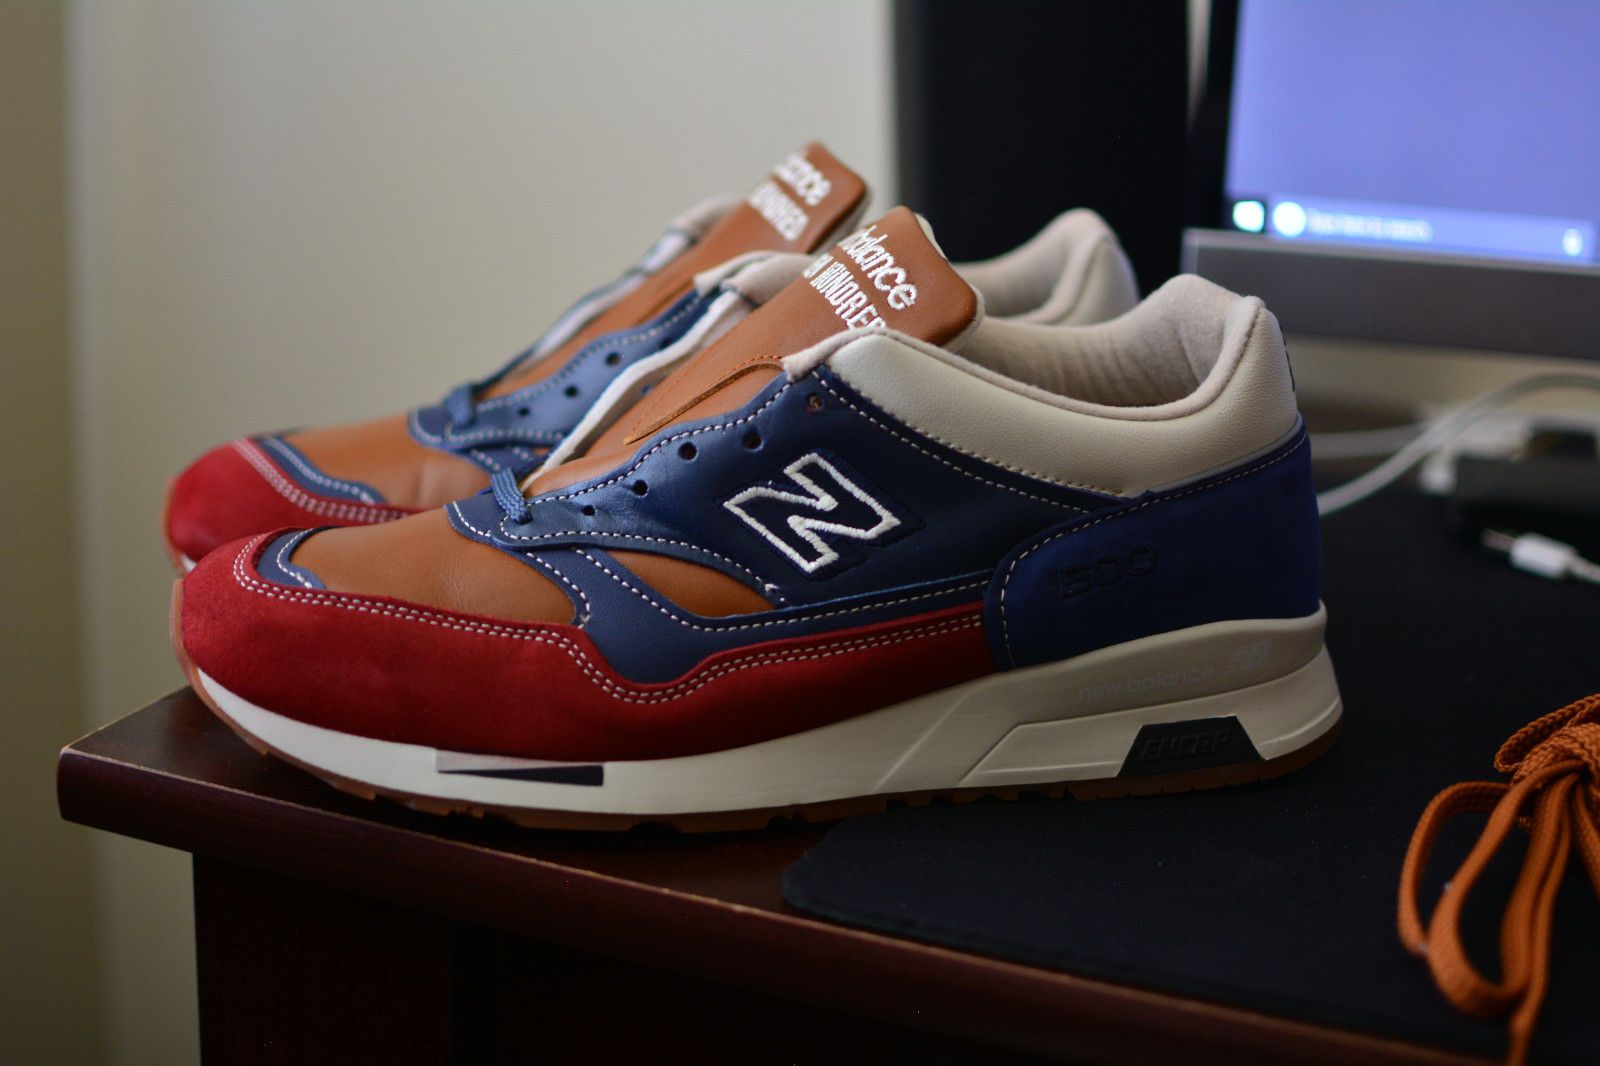 reputable site b61ad 0ea01 new zealand new balance 998 premier ebay bab49 69cb5